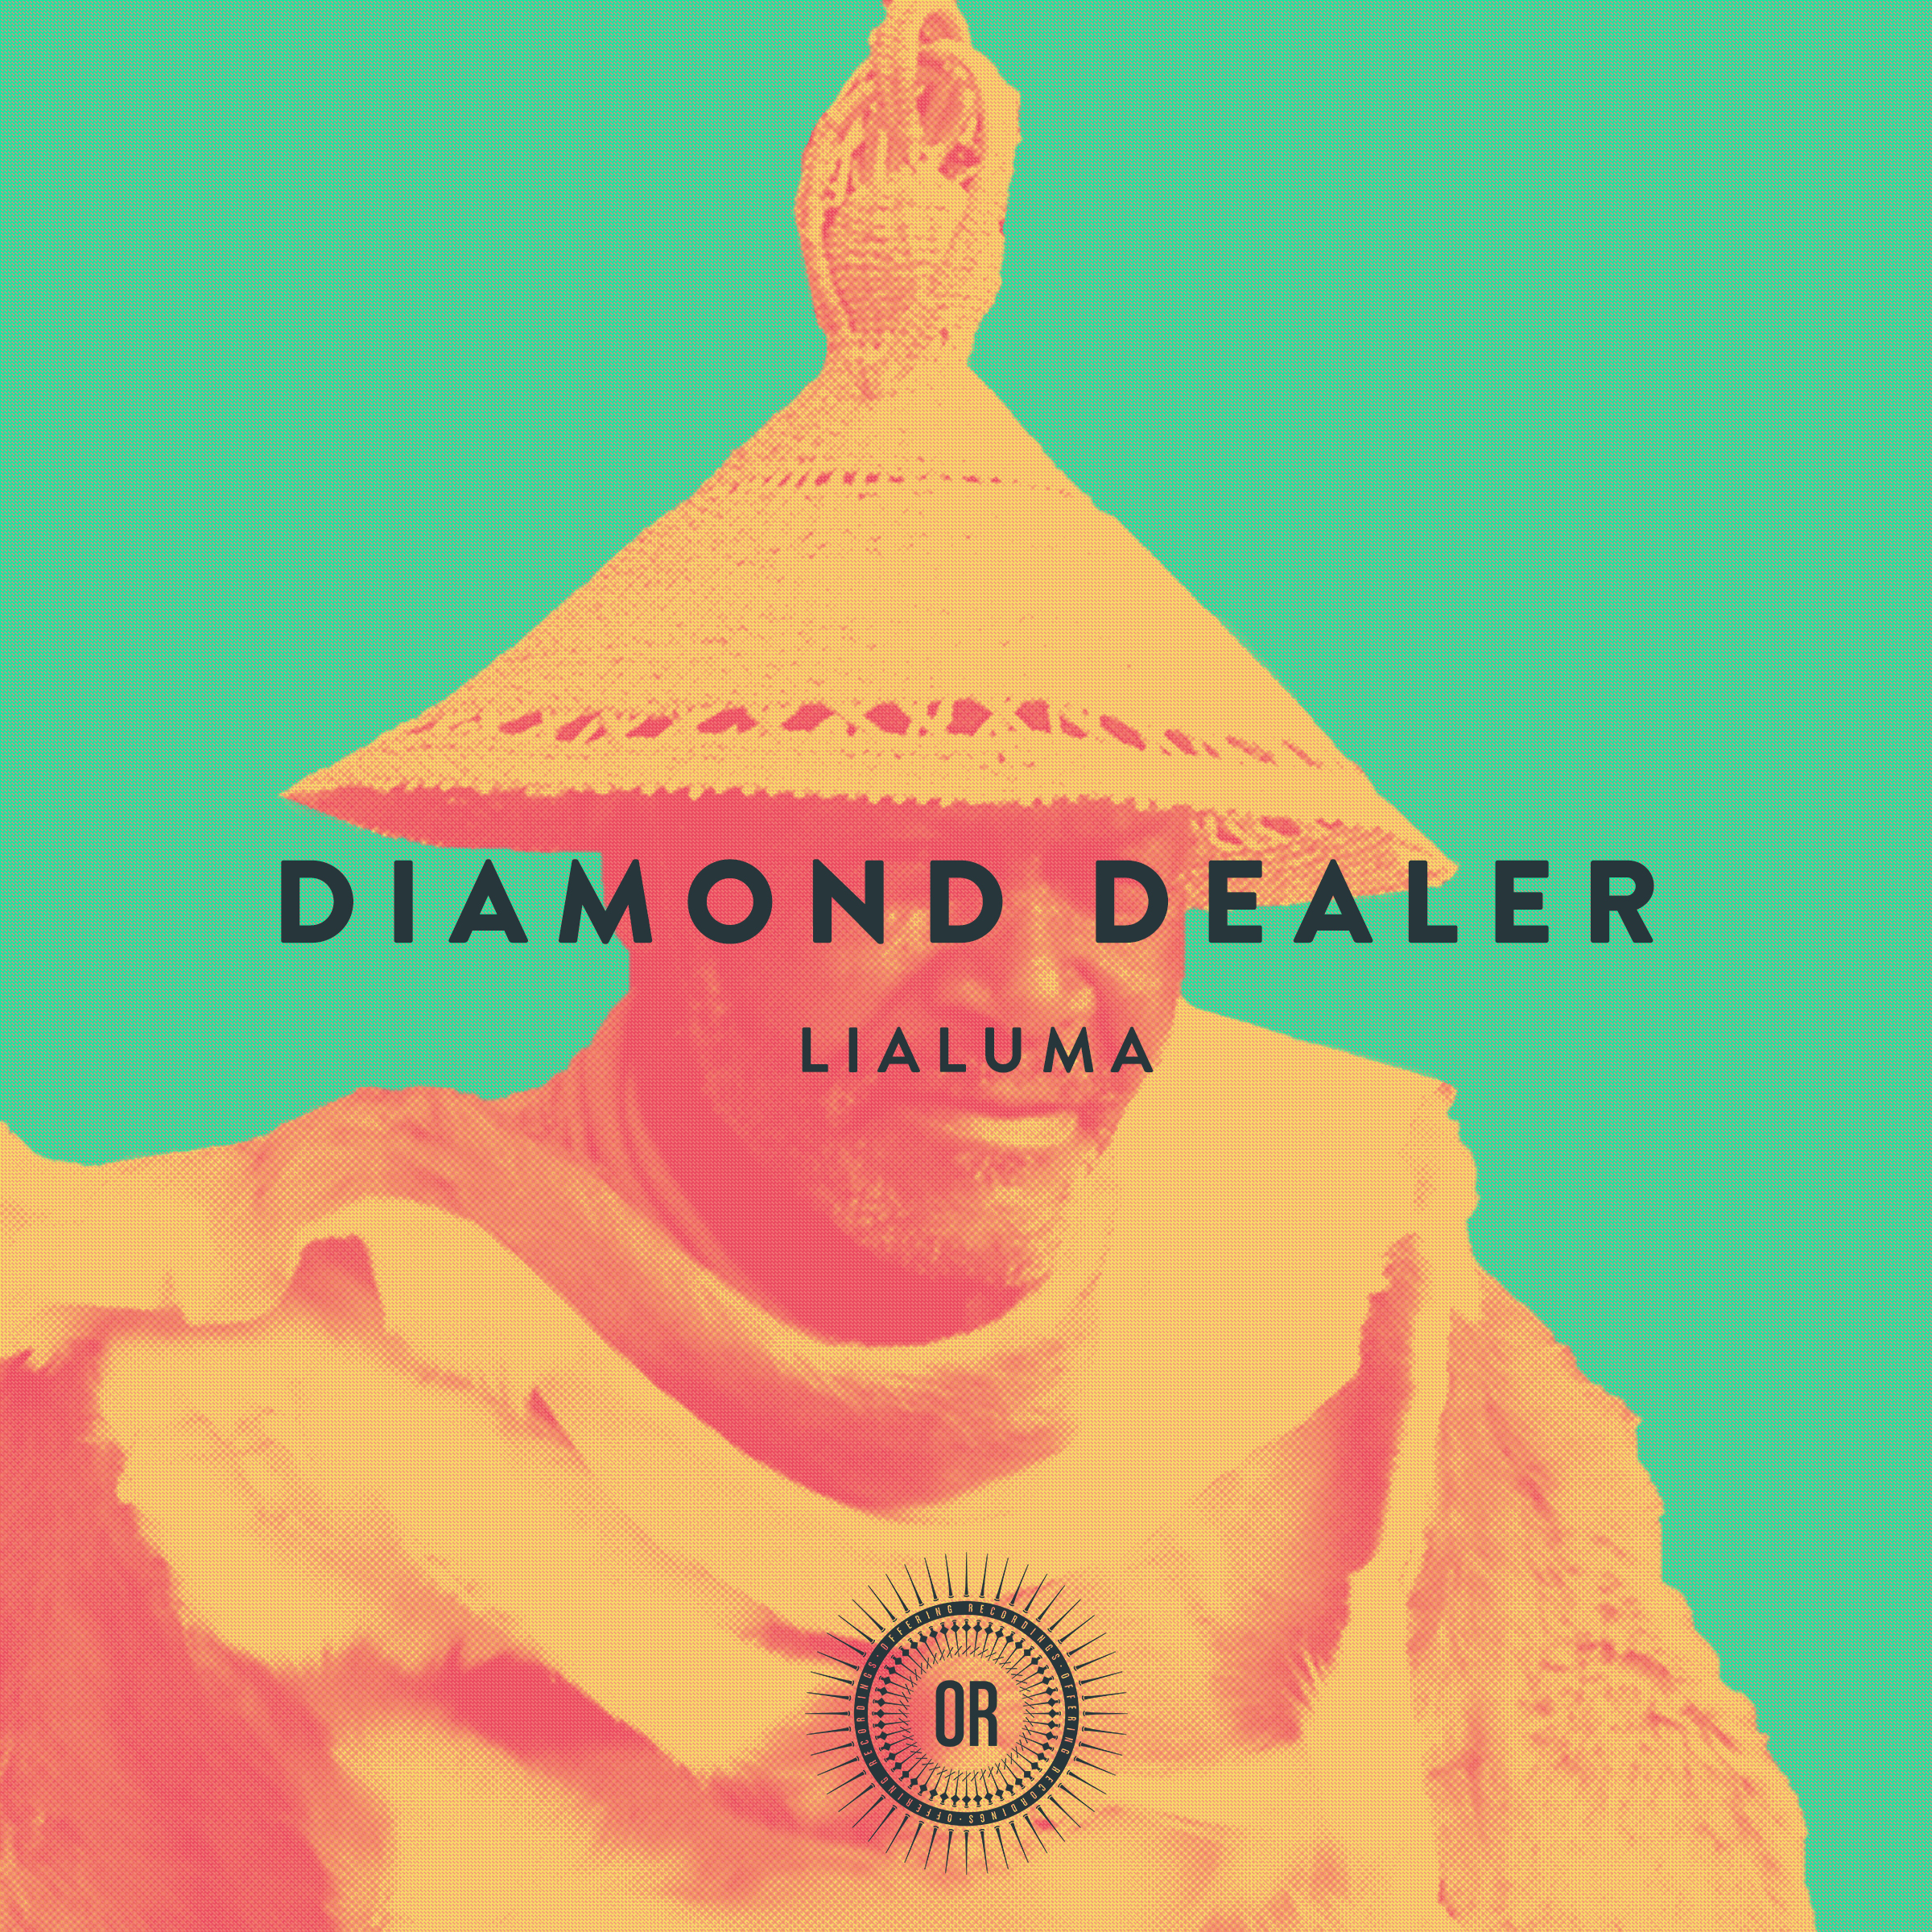 diamond-dealer-lialuma.jpg